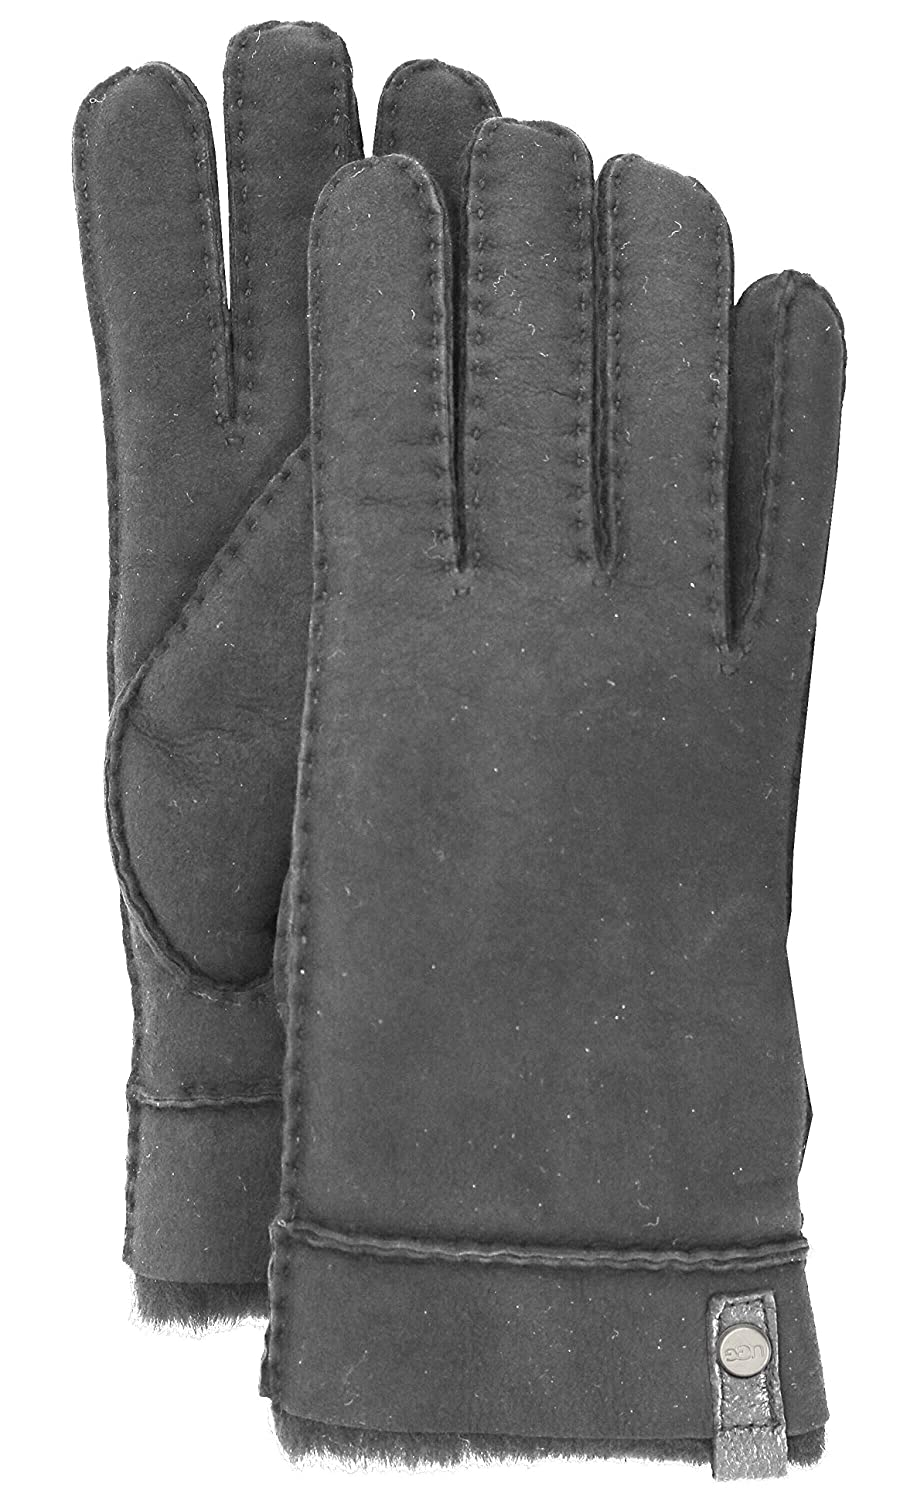 Image of Cold Weather Gloves UGG Women's W Tenney Water Resistant Gloves